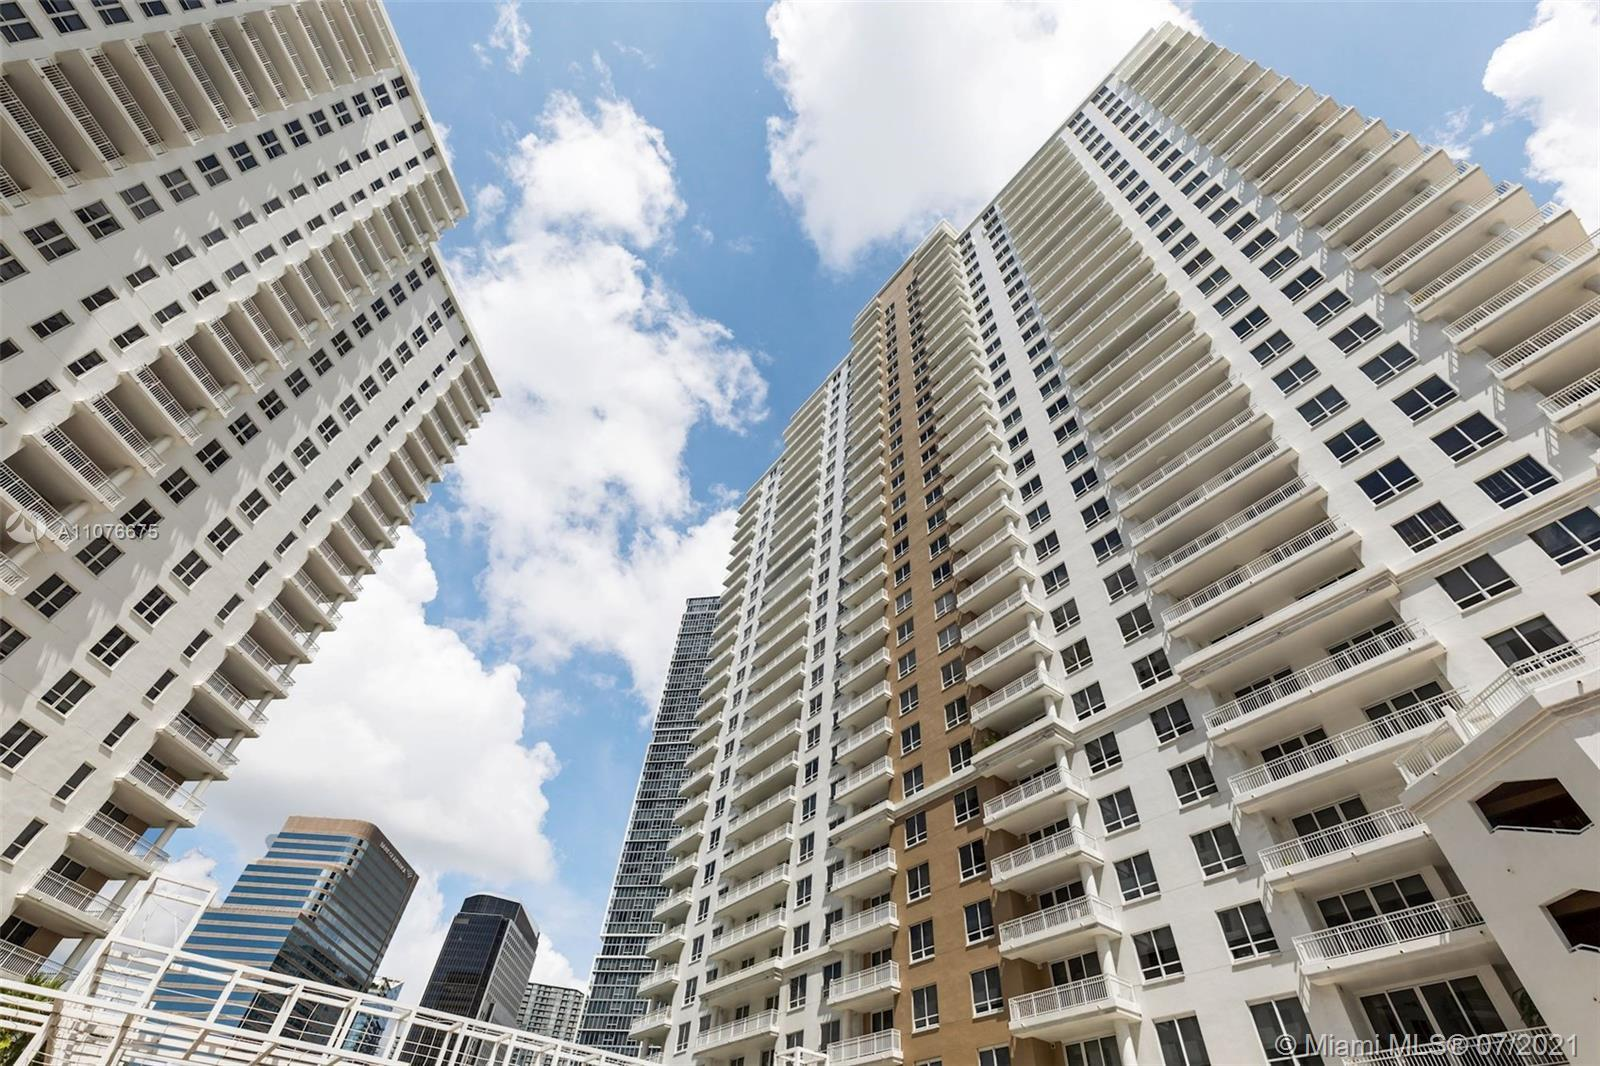 Spectacular 3 Bed, 3 Baths unit located Courts at Brickell Key  amenities include swimming pool with